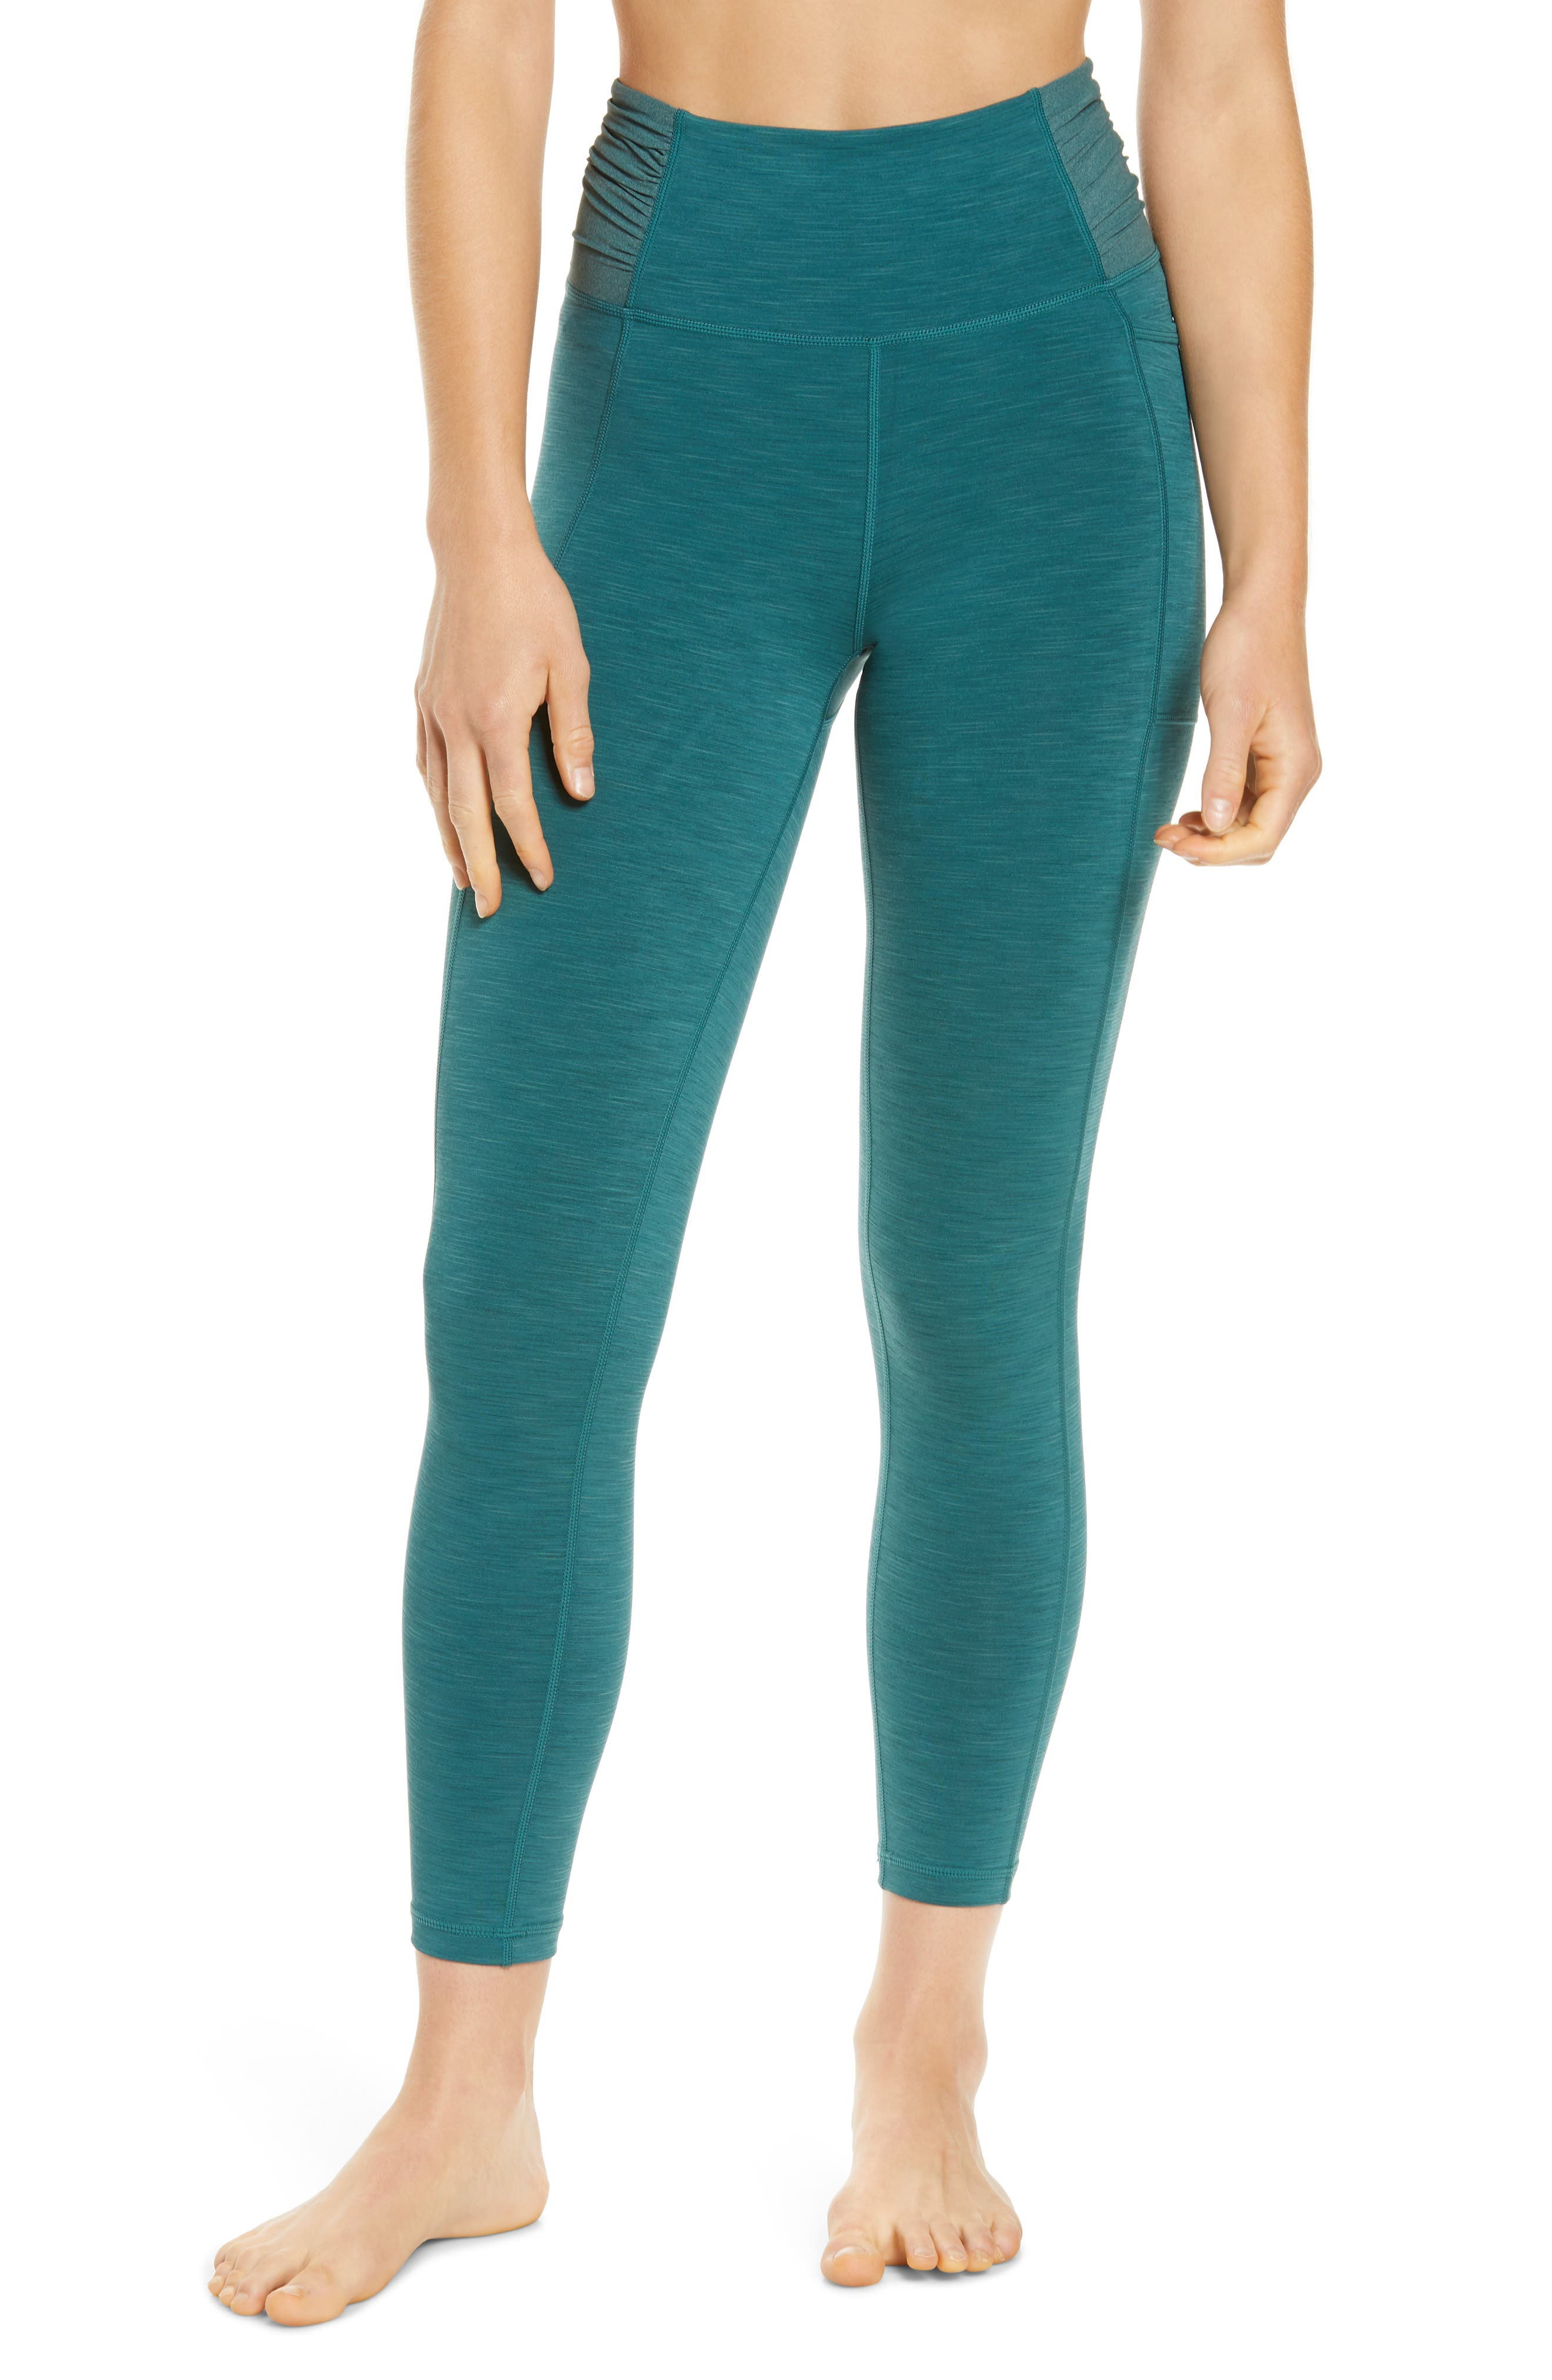 Designed with a comfortable high rise that supports your waist, these action-ready leggings are perfect for your next barre session or yoga class. Style Name: Sweaty Betty Super Sculpt Mesh 7/8 Yoga Leggings. Style Number: 6091351. Available in stores.